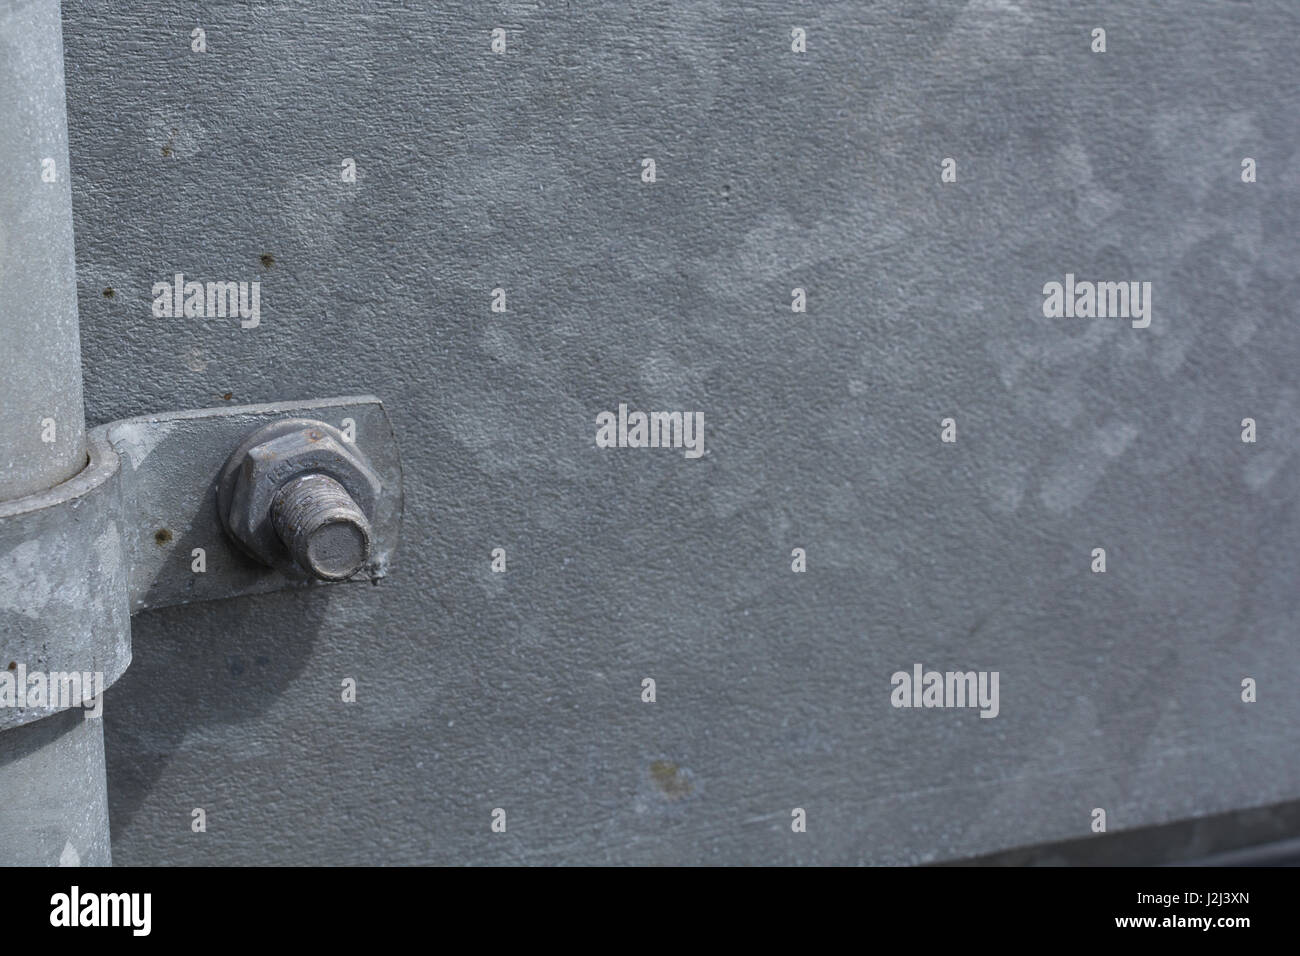 Bolt And Nut Stock Photos & Bolt And Nut Stock Images - Page 2 - Alamy